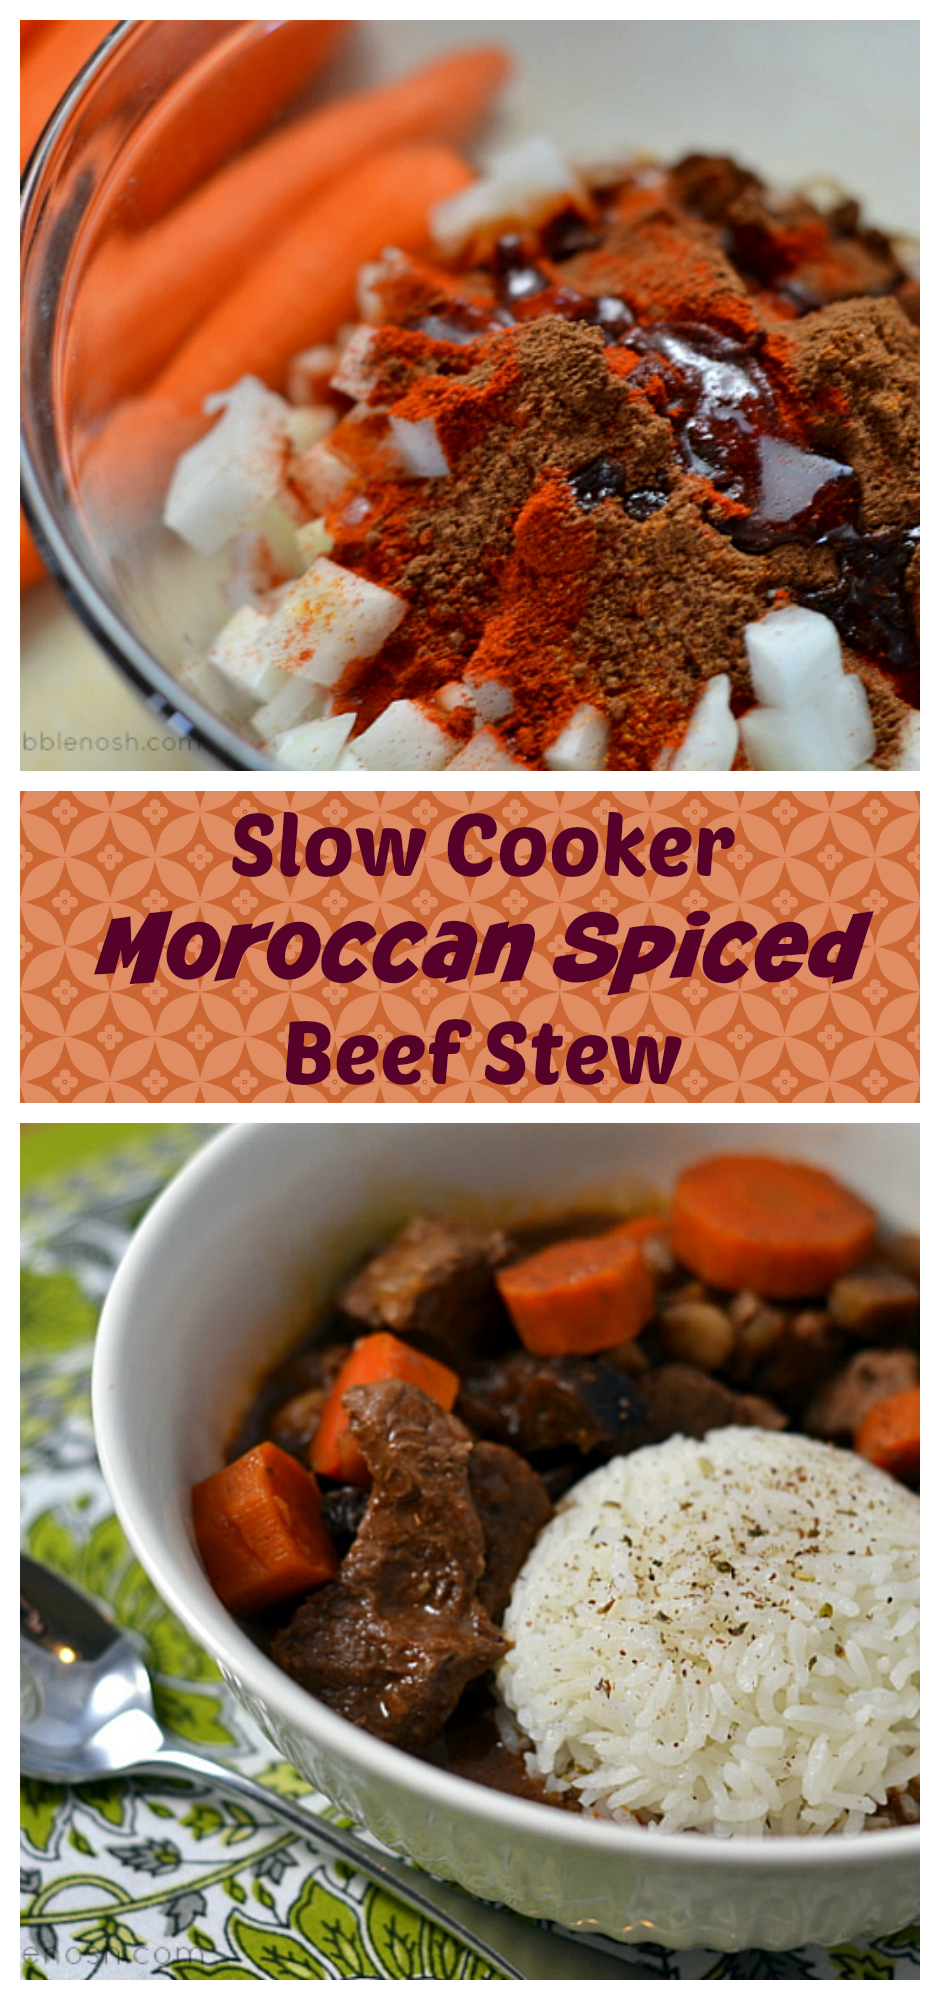 Slow Cooker Moroccan-Spiced Beef StewChew Nibble Nosh